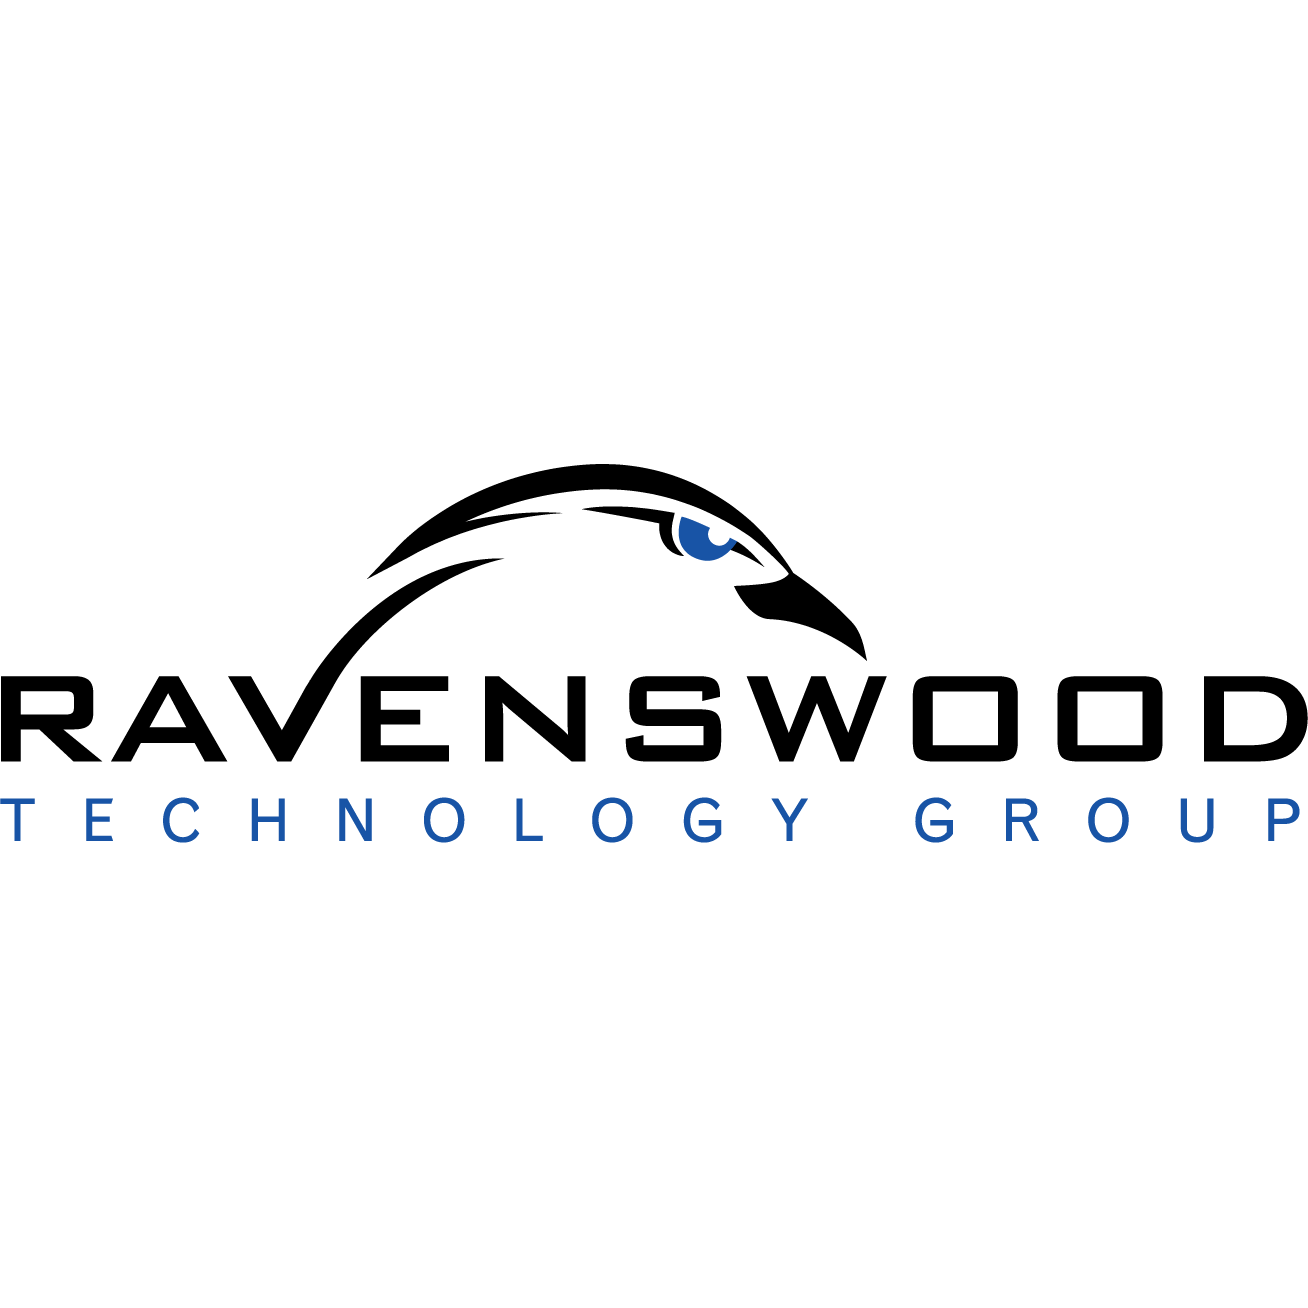 Ravenswood Technology Group